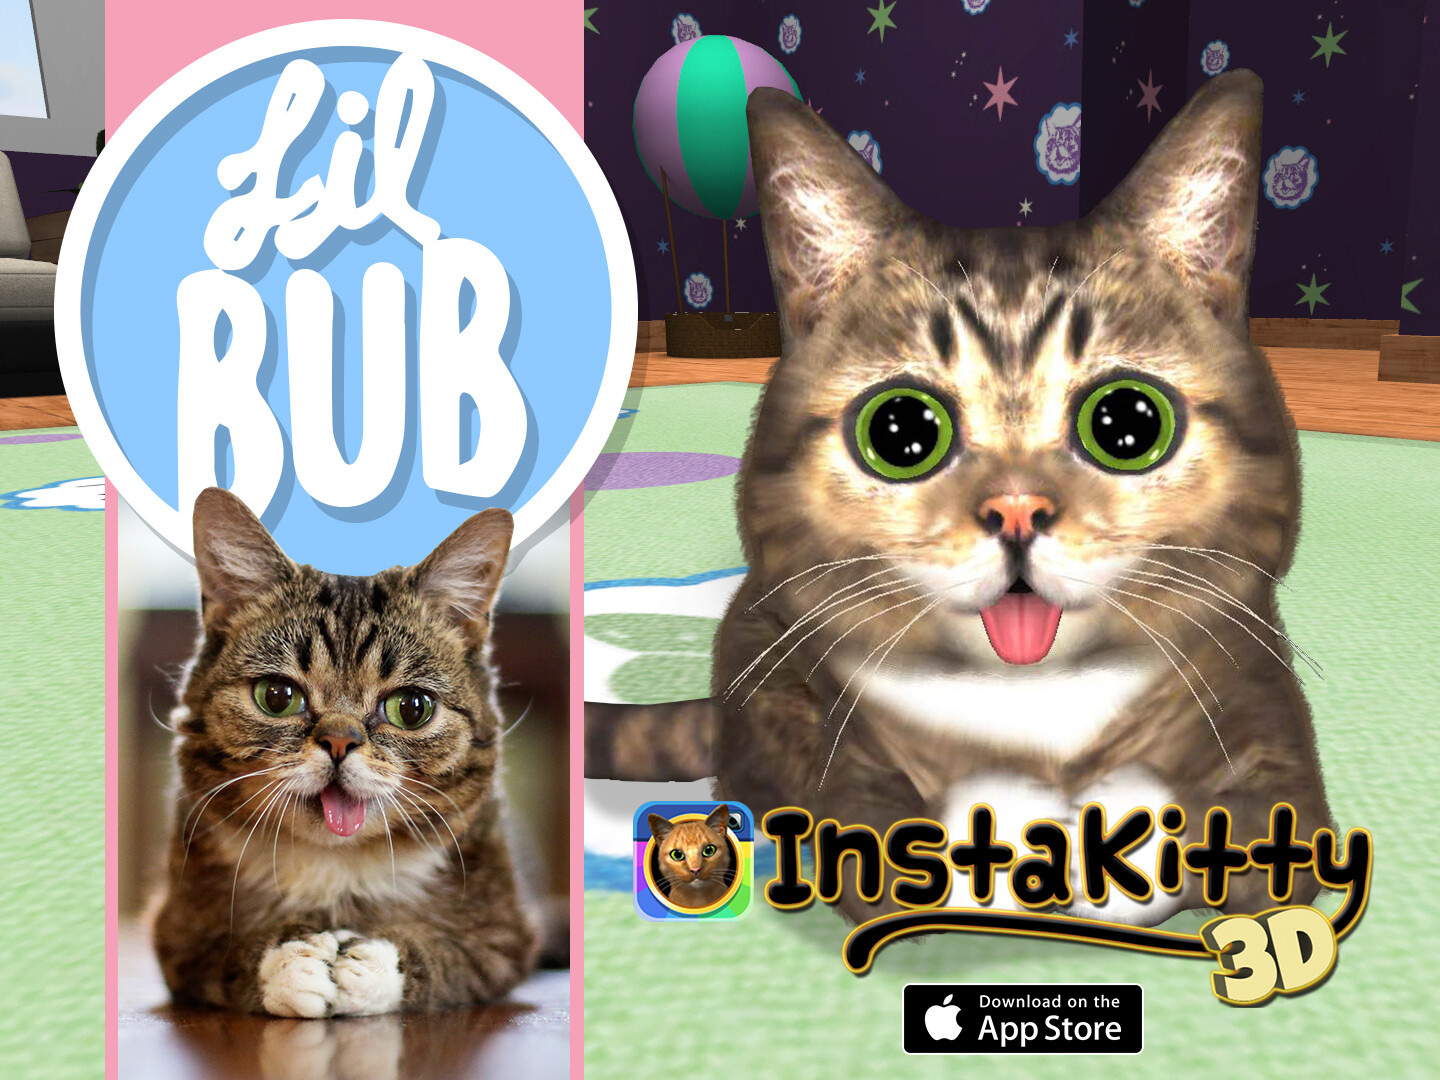 Marketing art for InstaKitty3D's LilBub update.